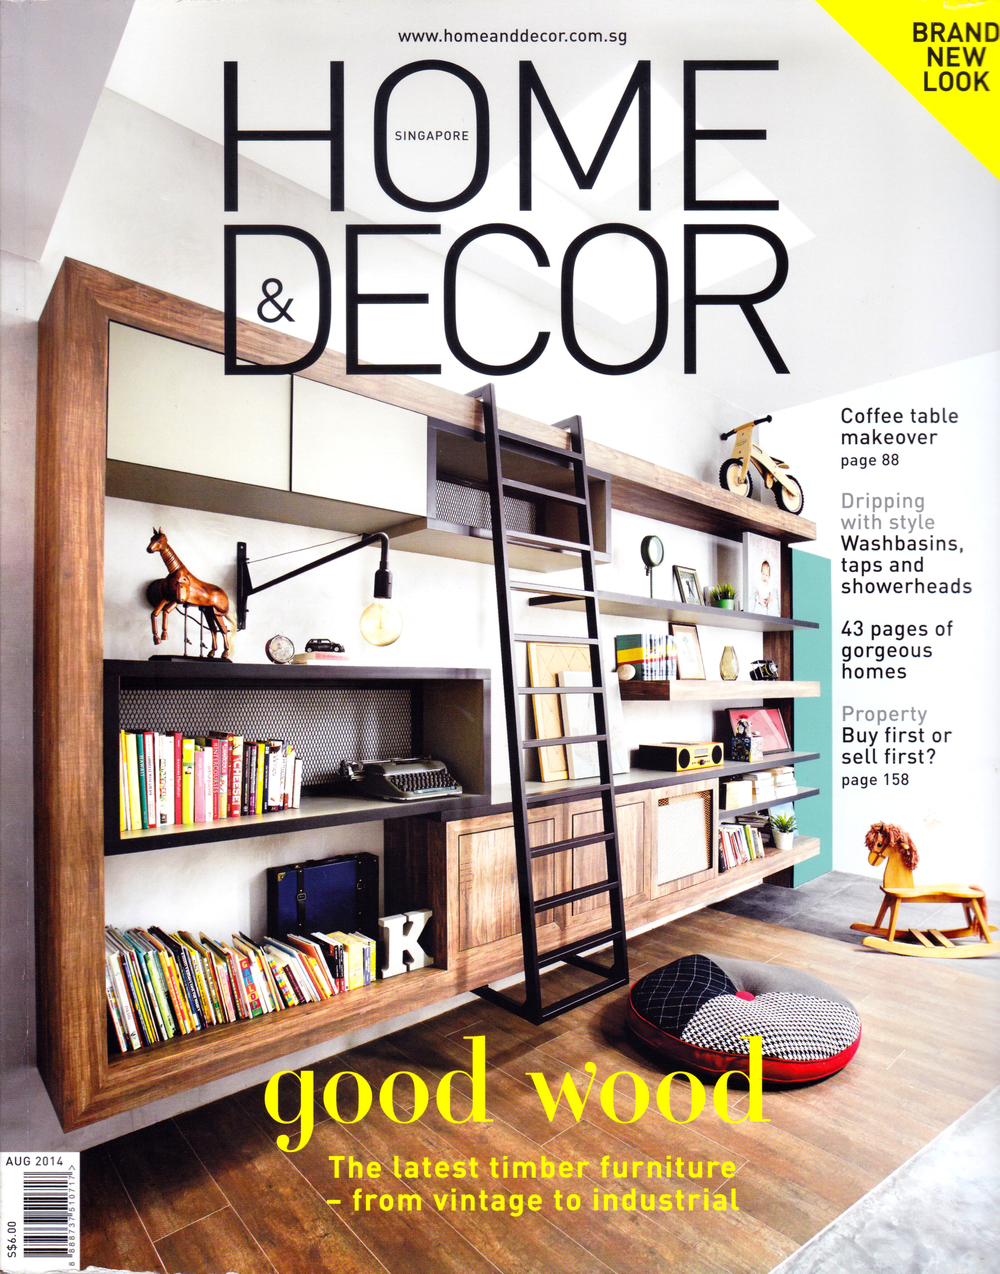 Home&Decor_August2014_Cover.jpeg